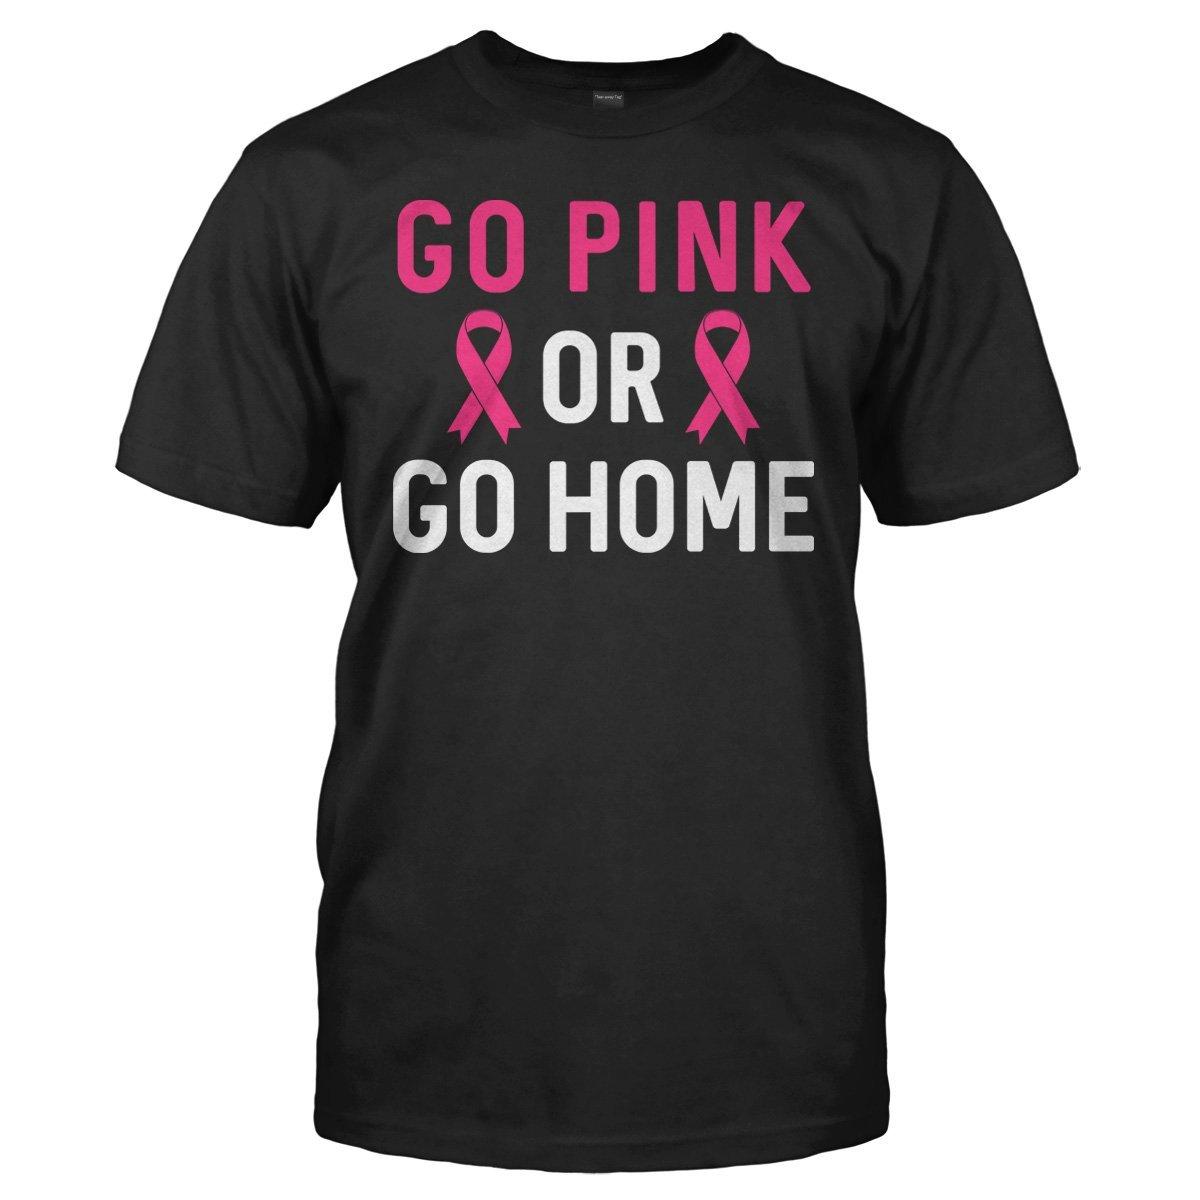 Go Pink Or Go Home - T Shirt